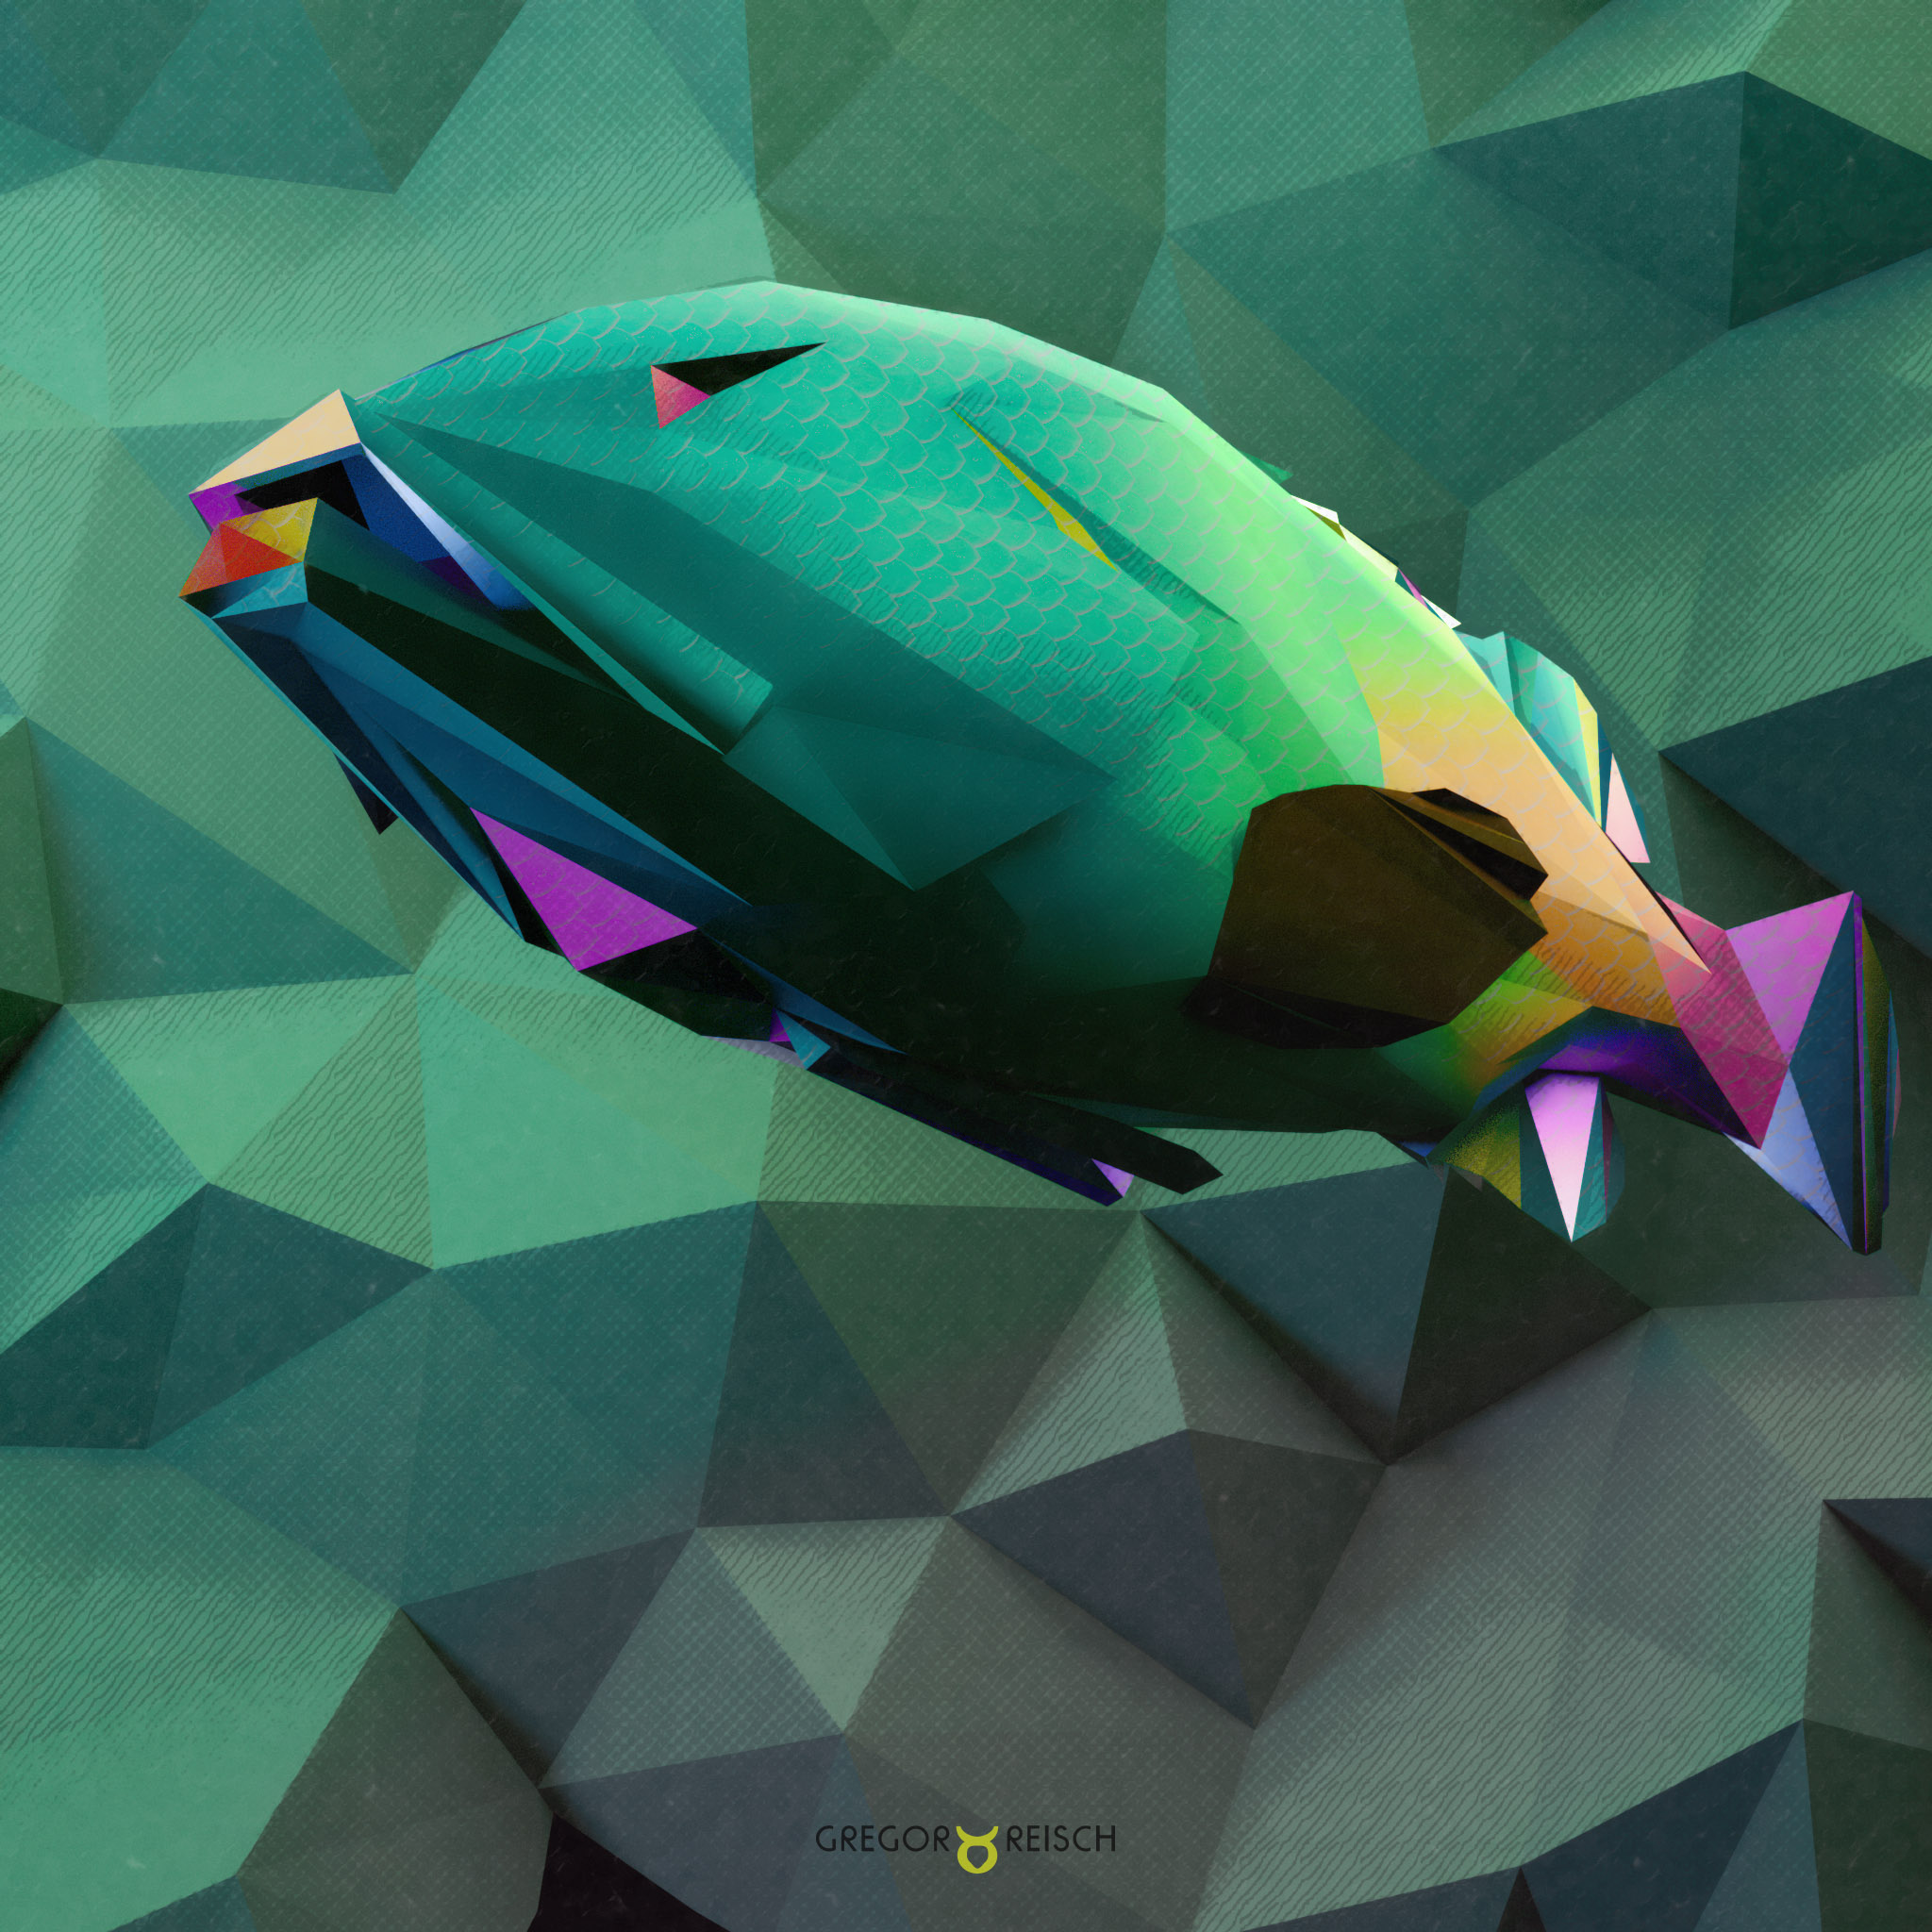 Artwork Polygon Fish by Gregor Reisch